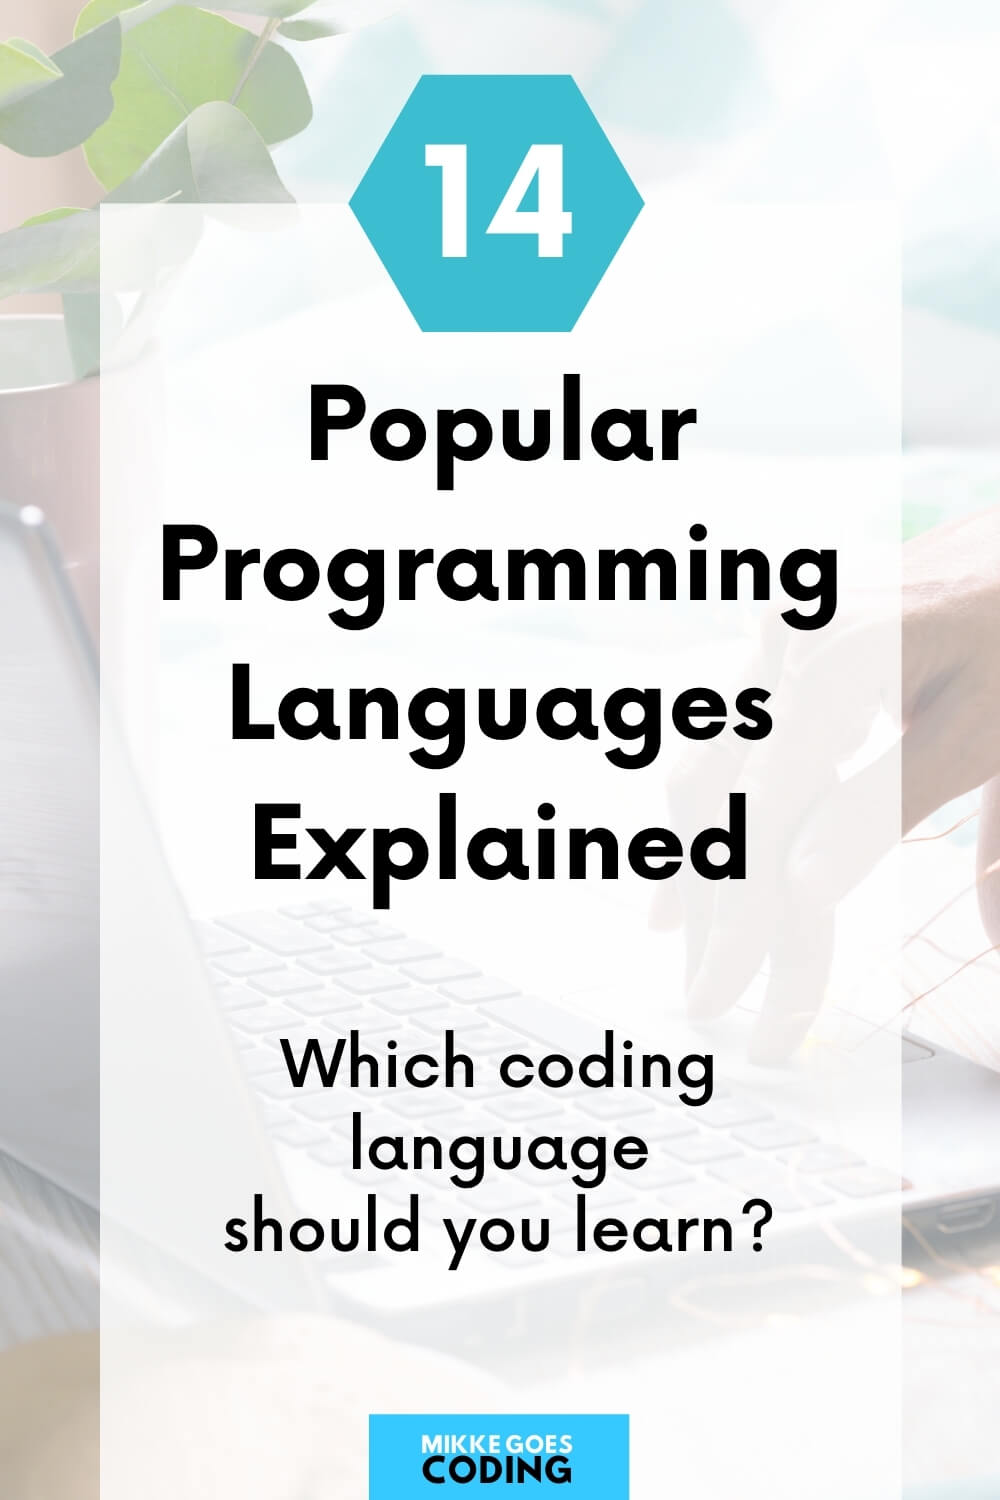 Popular programming languages and their uses explained - MikkeGoes 02